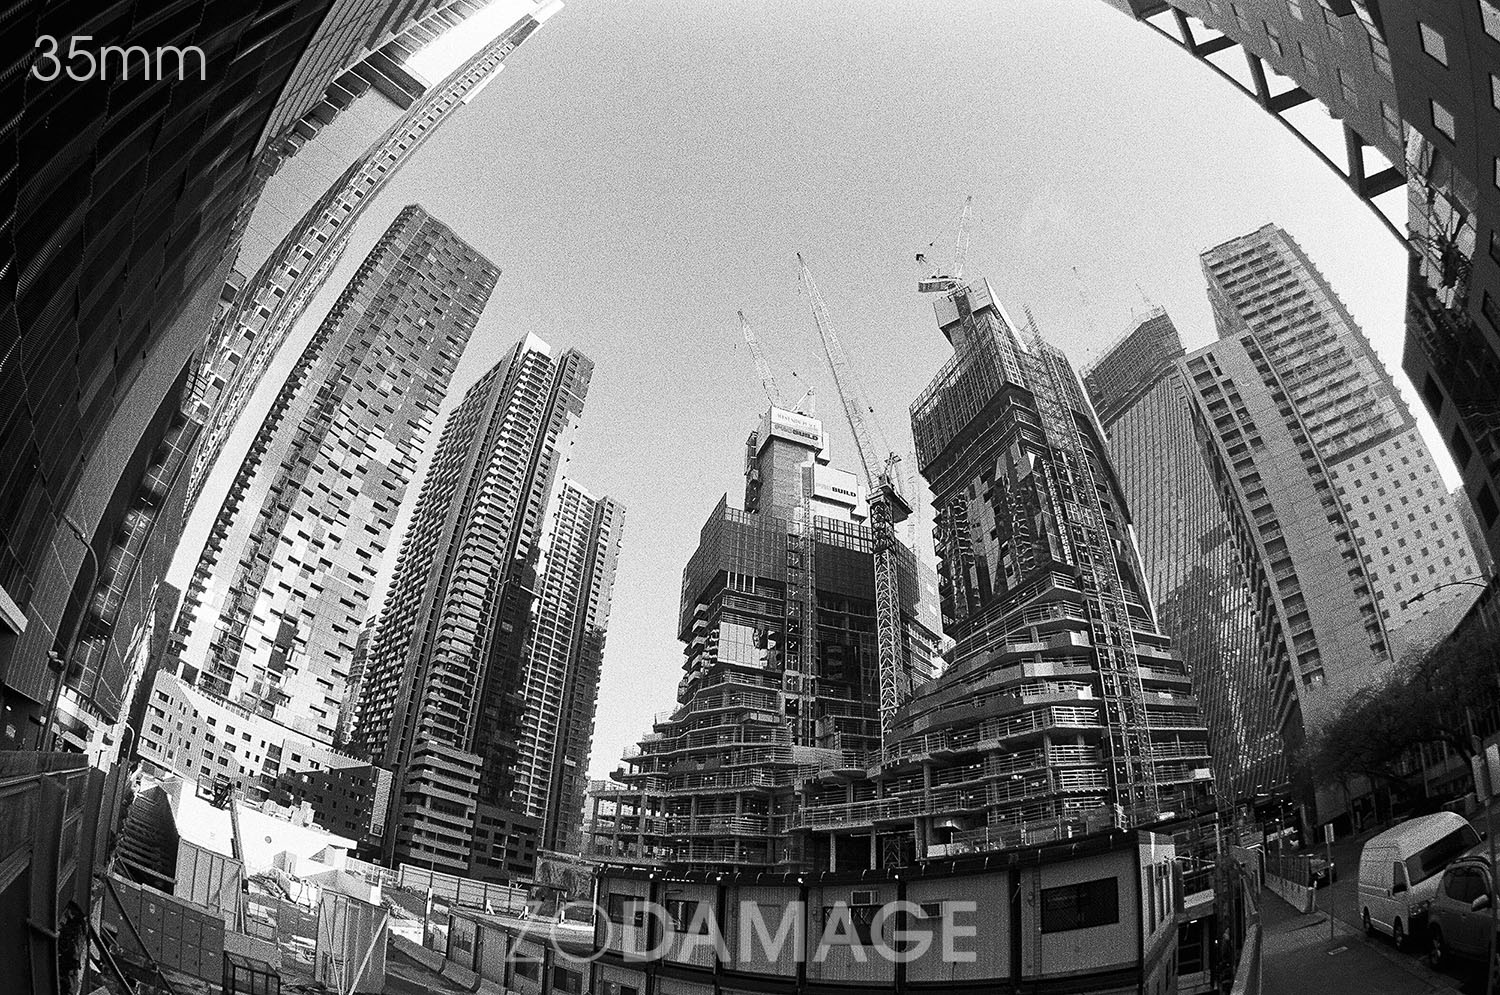 Progress Demolition or Development (II) June 2019 Shot using Canon EOS 3 with Sigma Fisheye on Ilford HP5 Plus (35mm). Negatives processes by Zo with love.